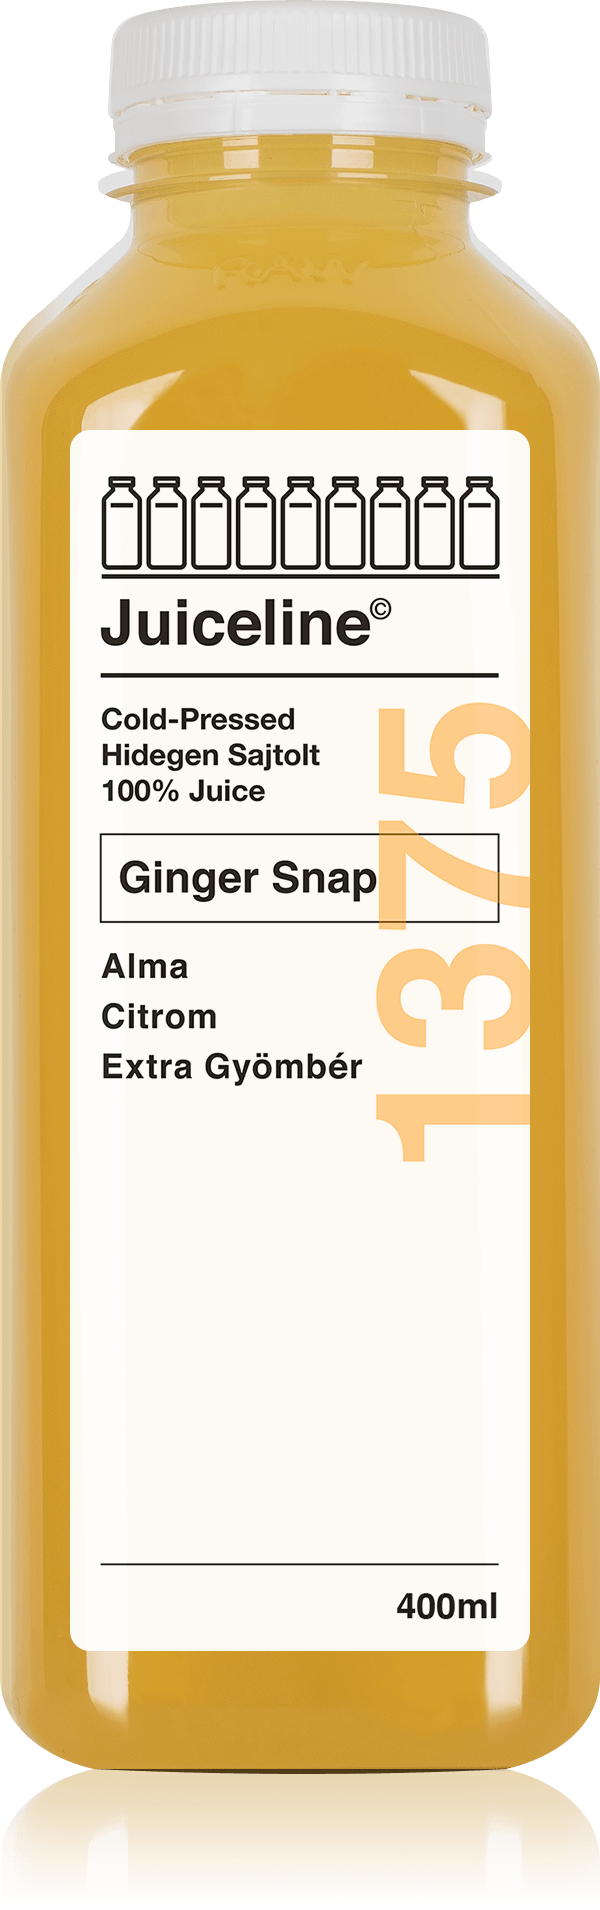 1375 Ginger Snap